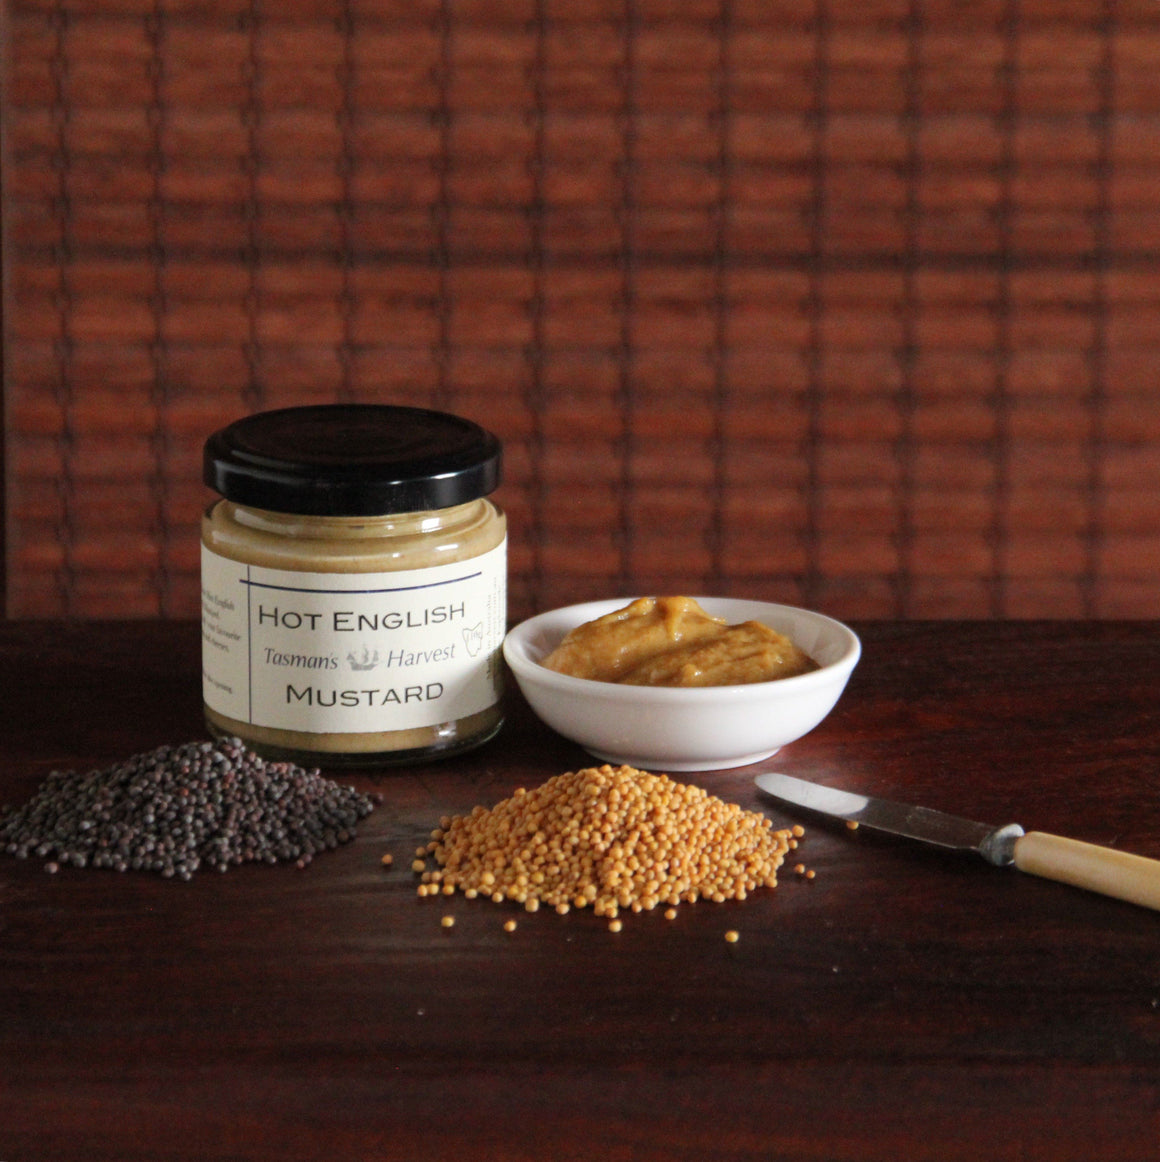 Tasman's Harvest Hot English Mustard